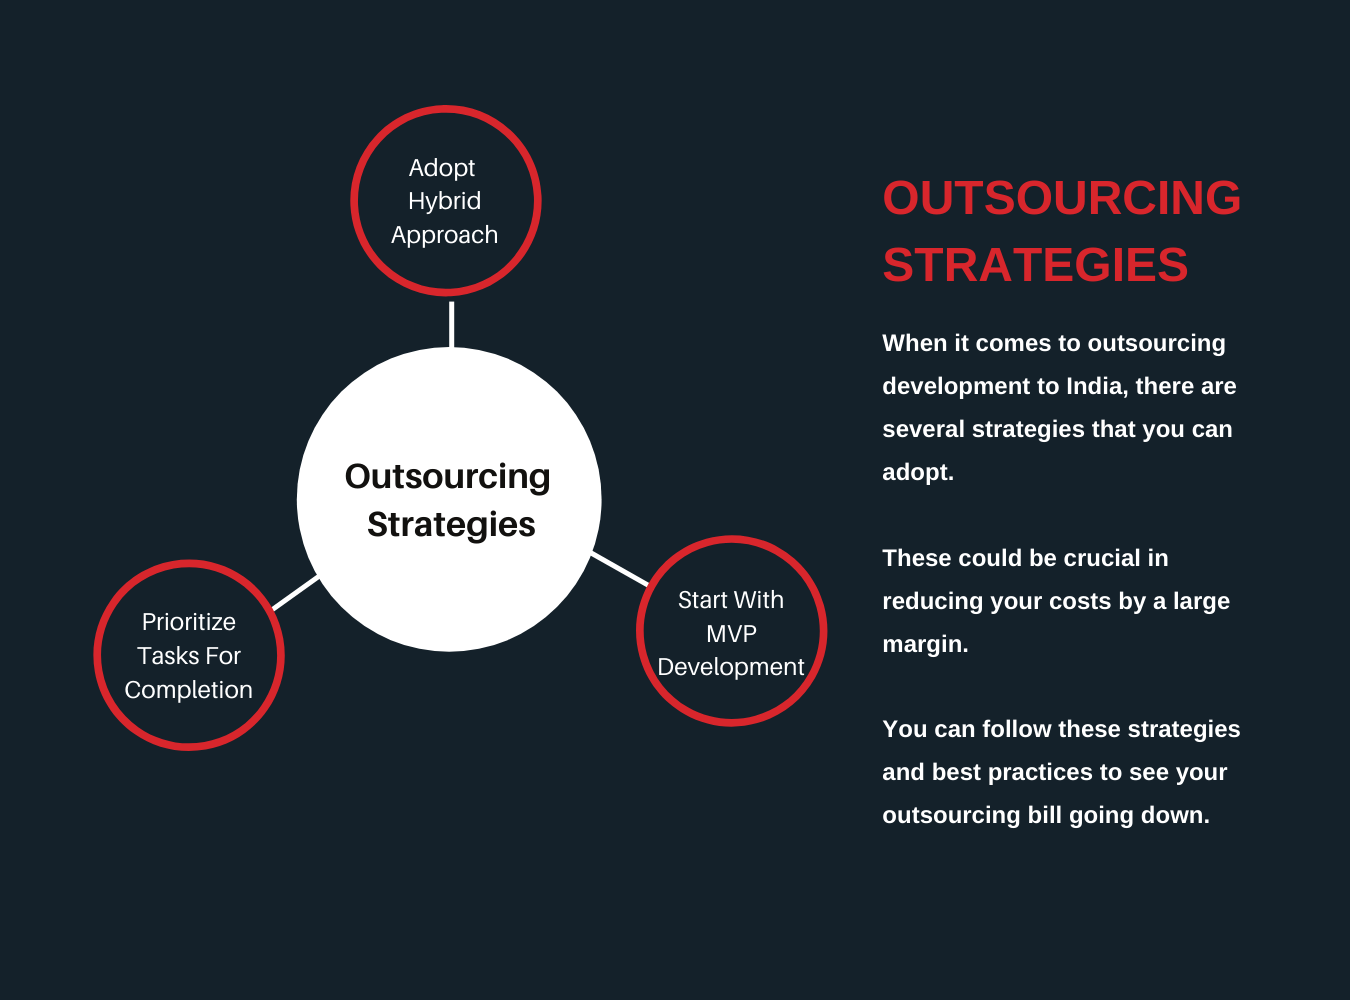 outsourcing cost images (10)